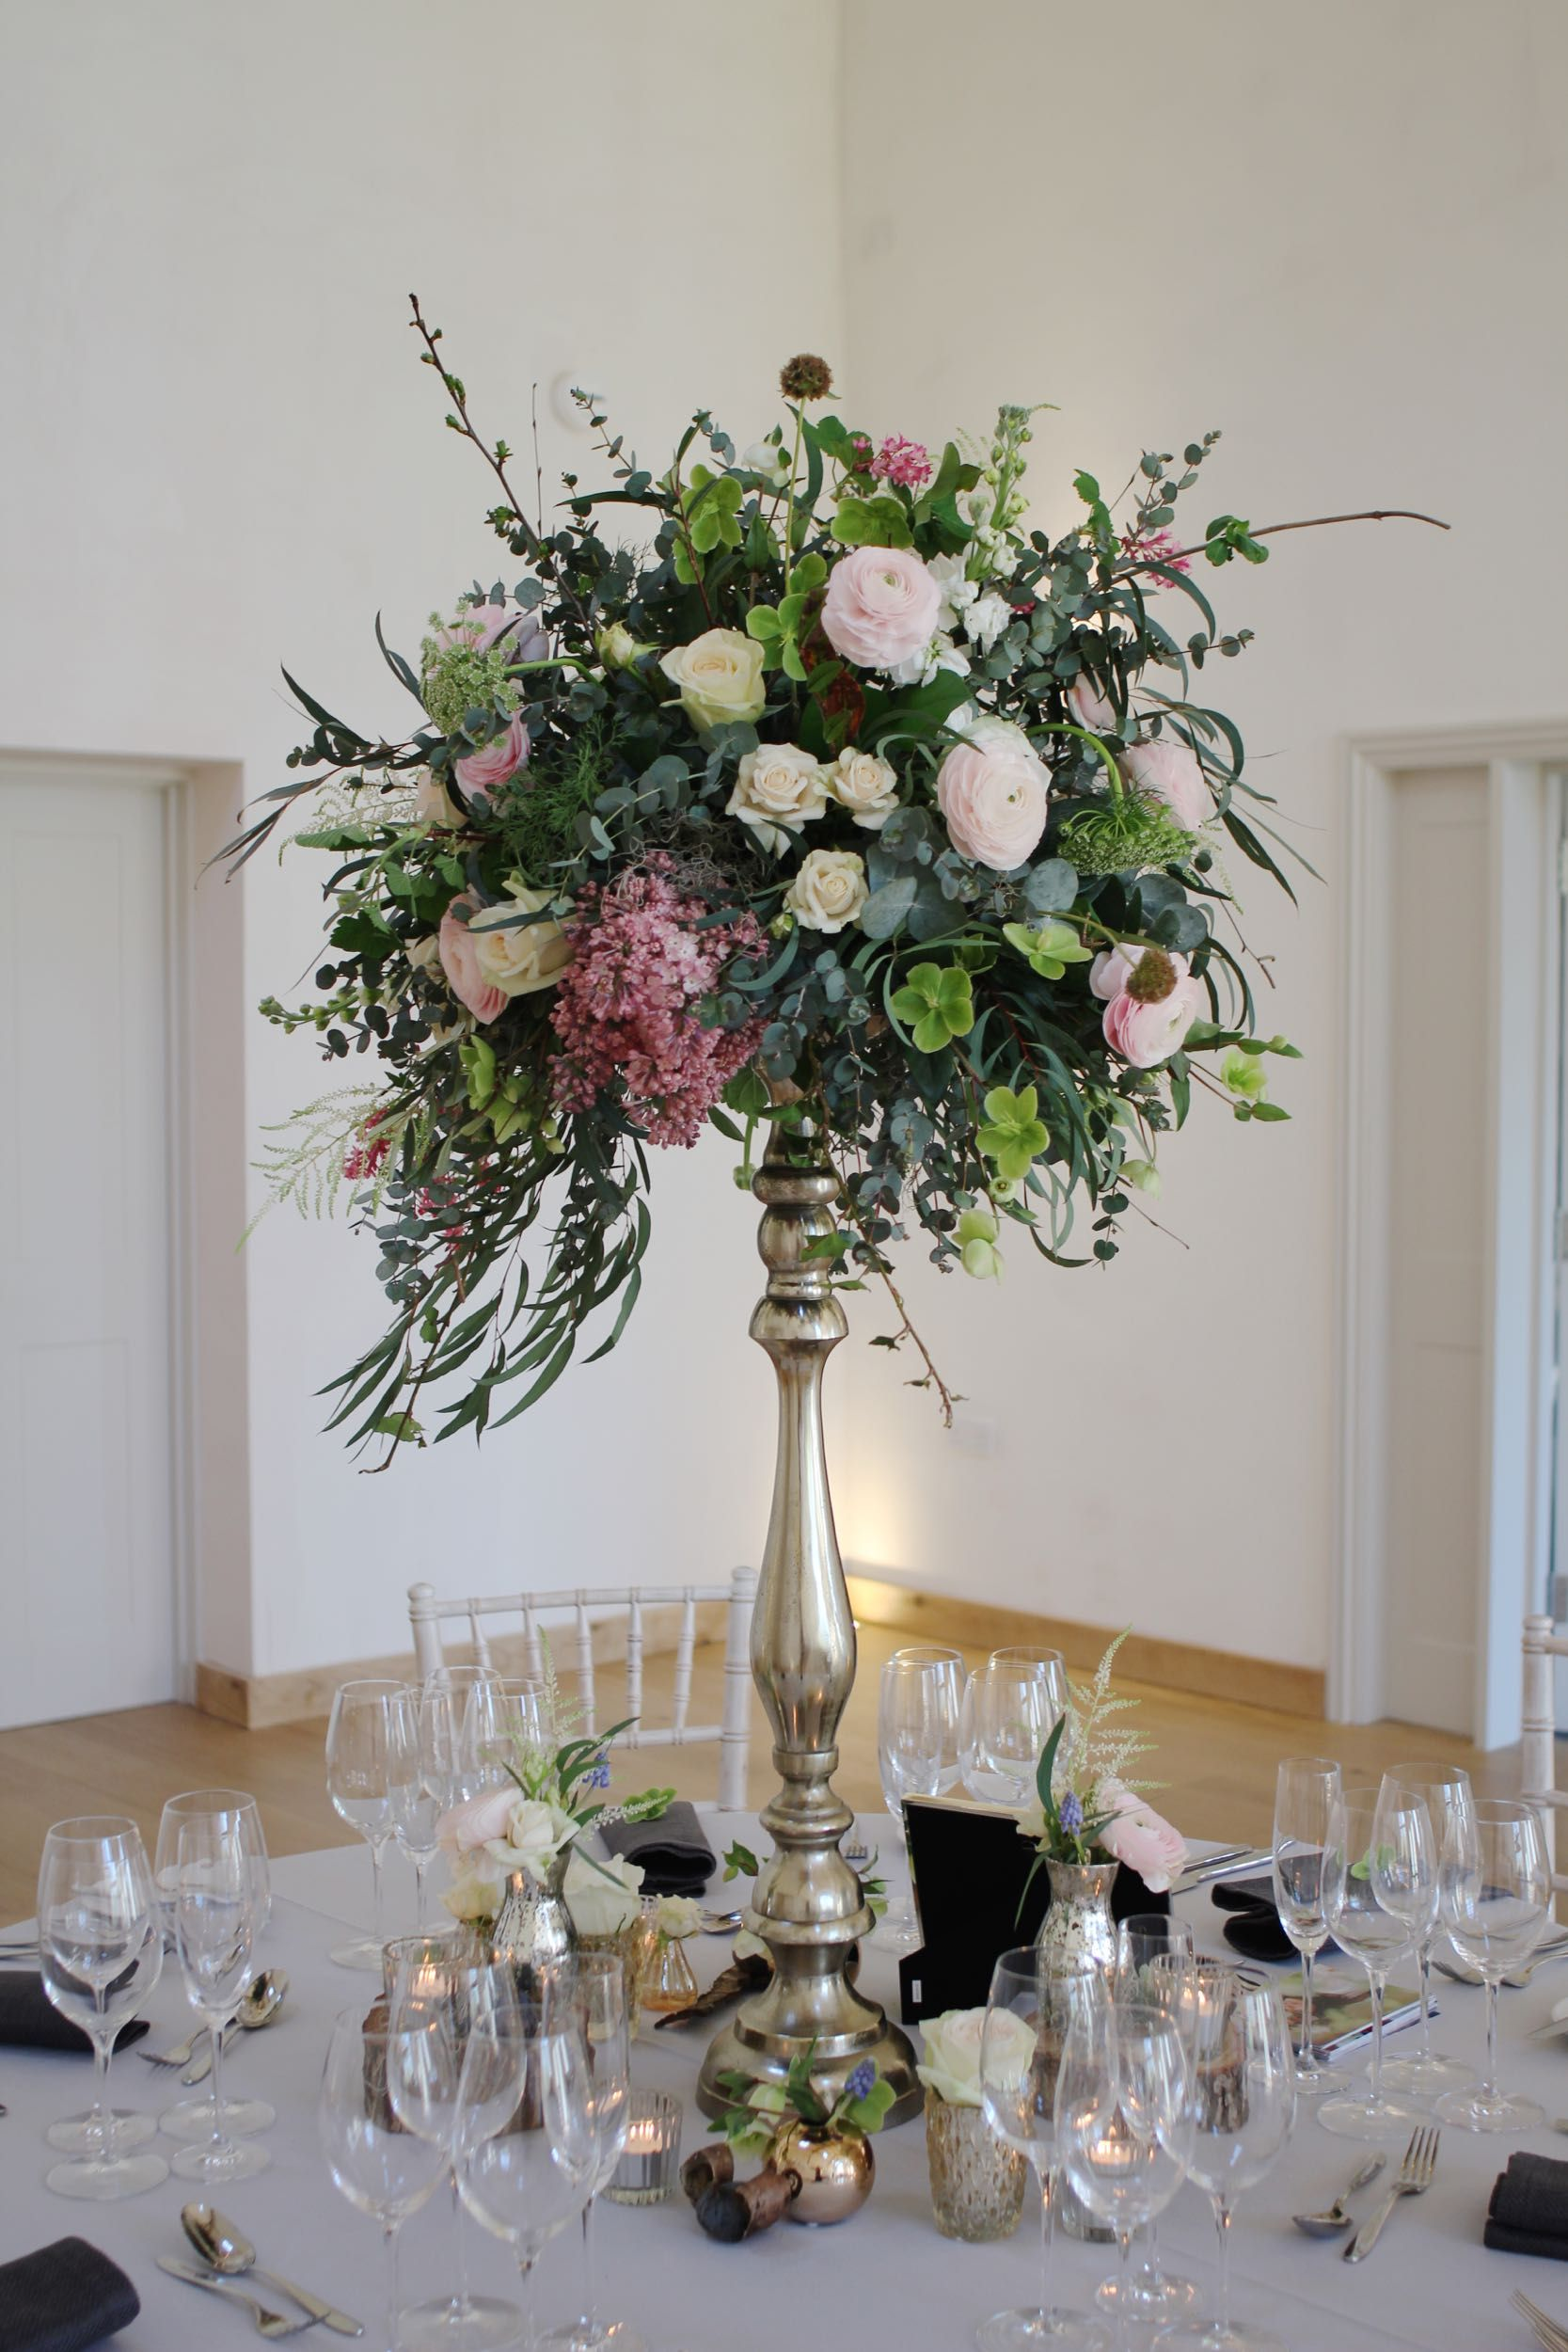 Blush Pinks And White Flowers And Styling With Candle Light At